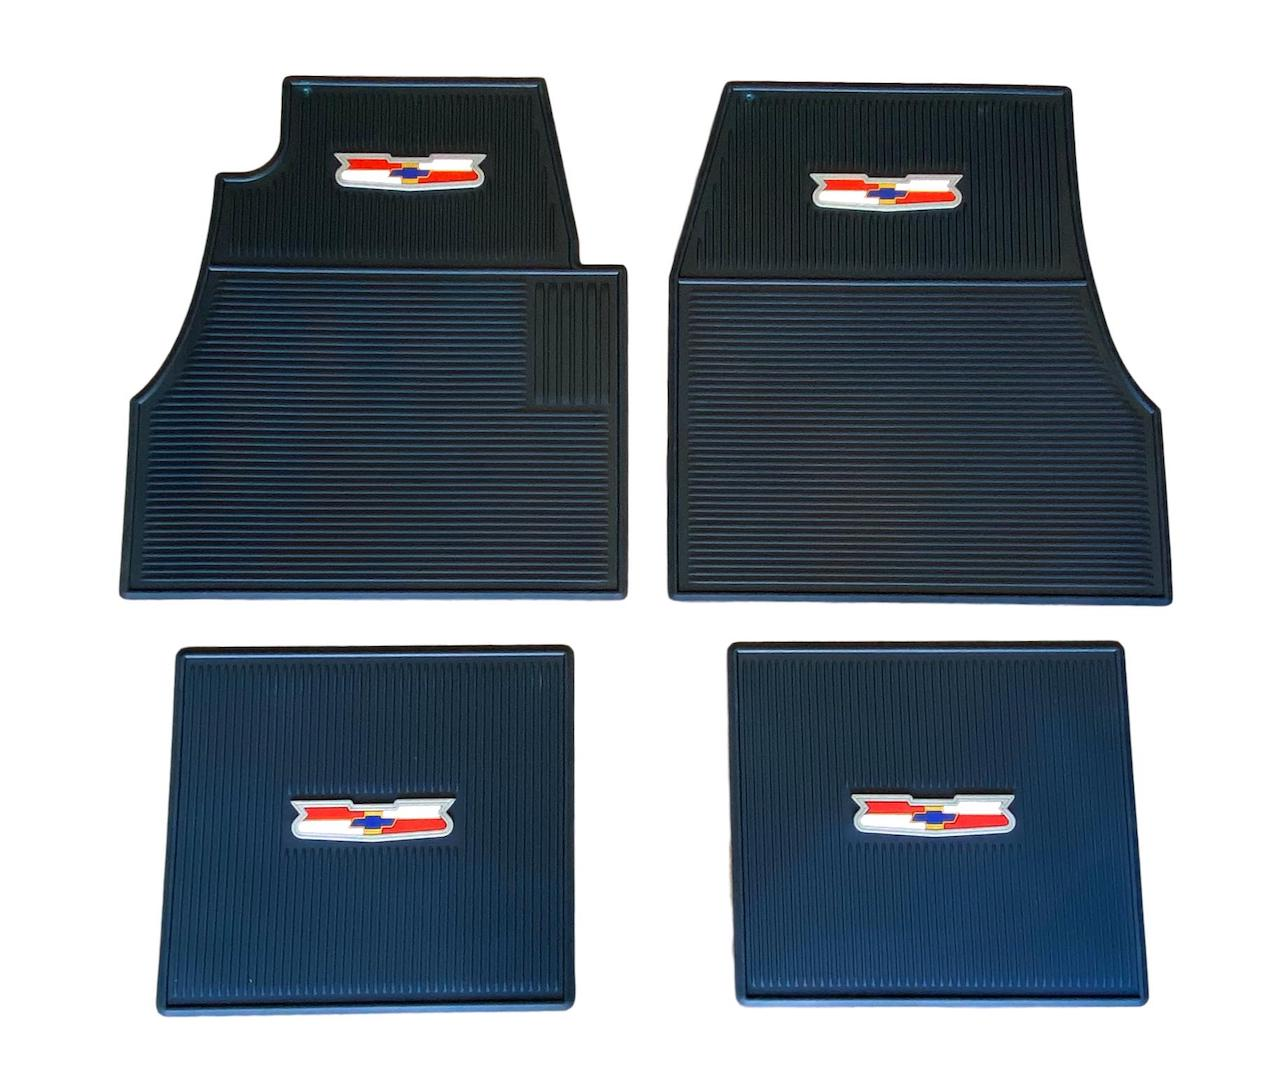 1955 1956 1957 Chevy Dark Blue Rubber Floor Mats With Crest Logo